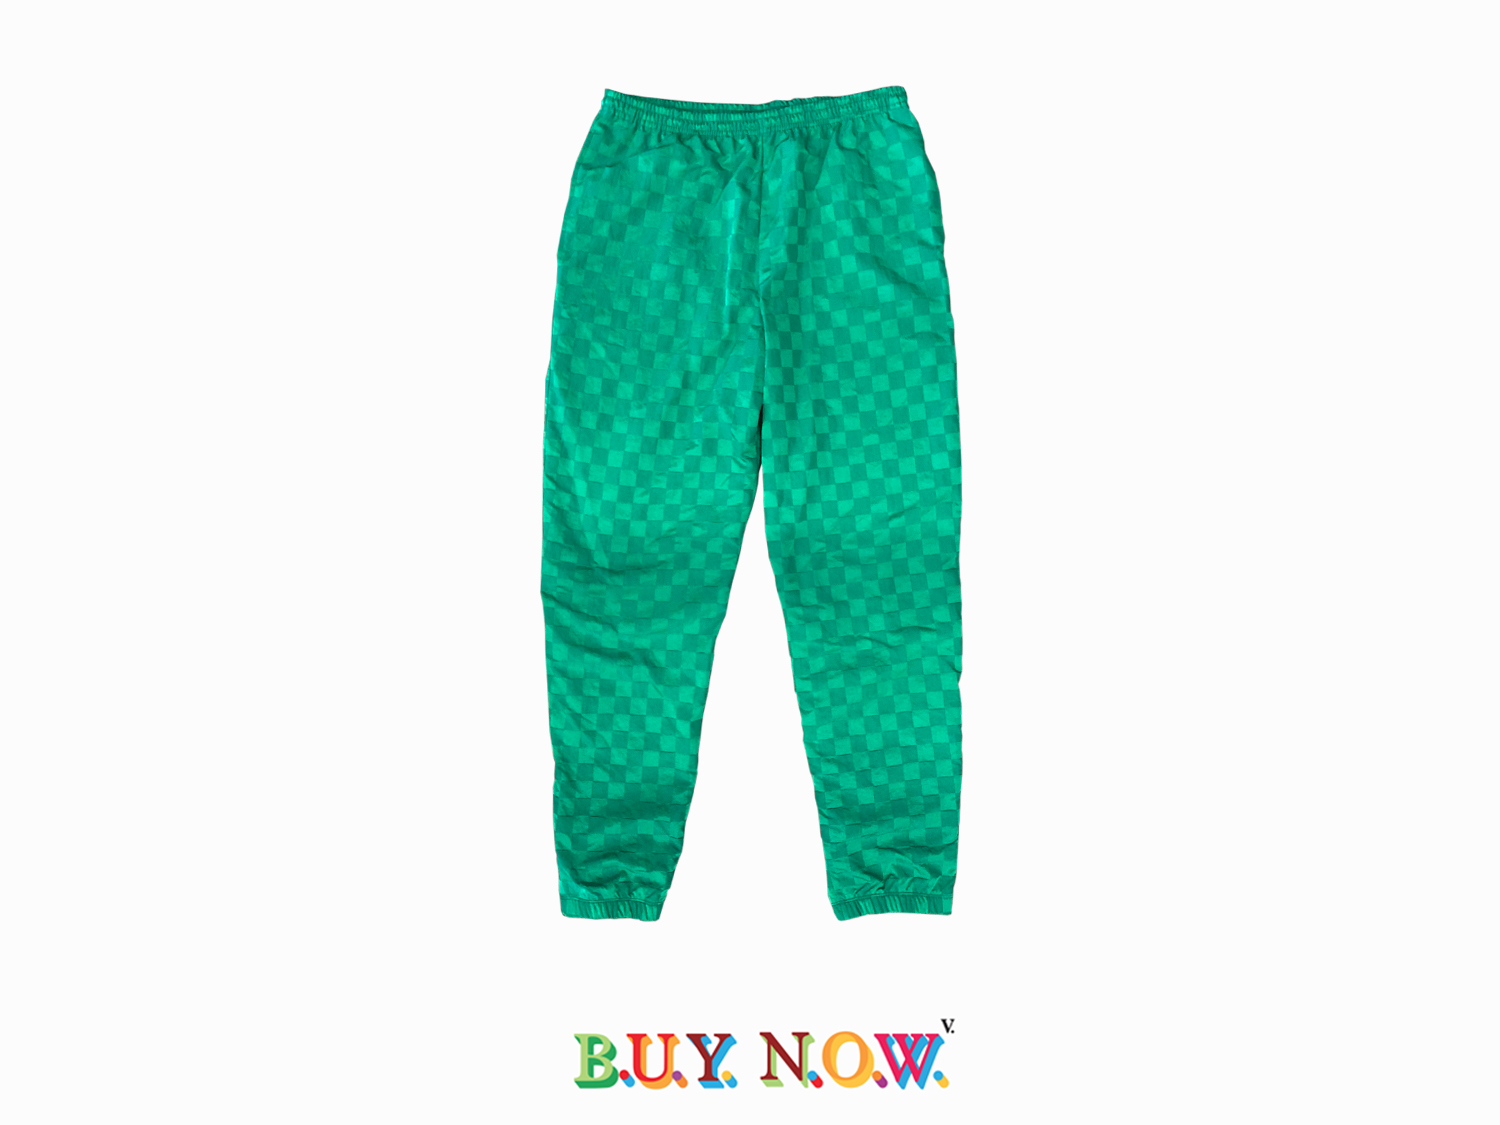 greencheckeredpant.cover.jpg